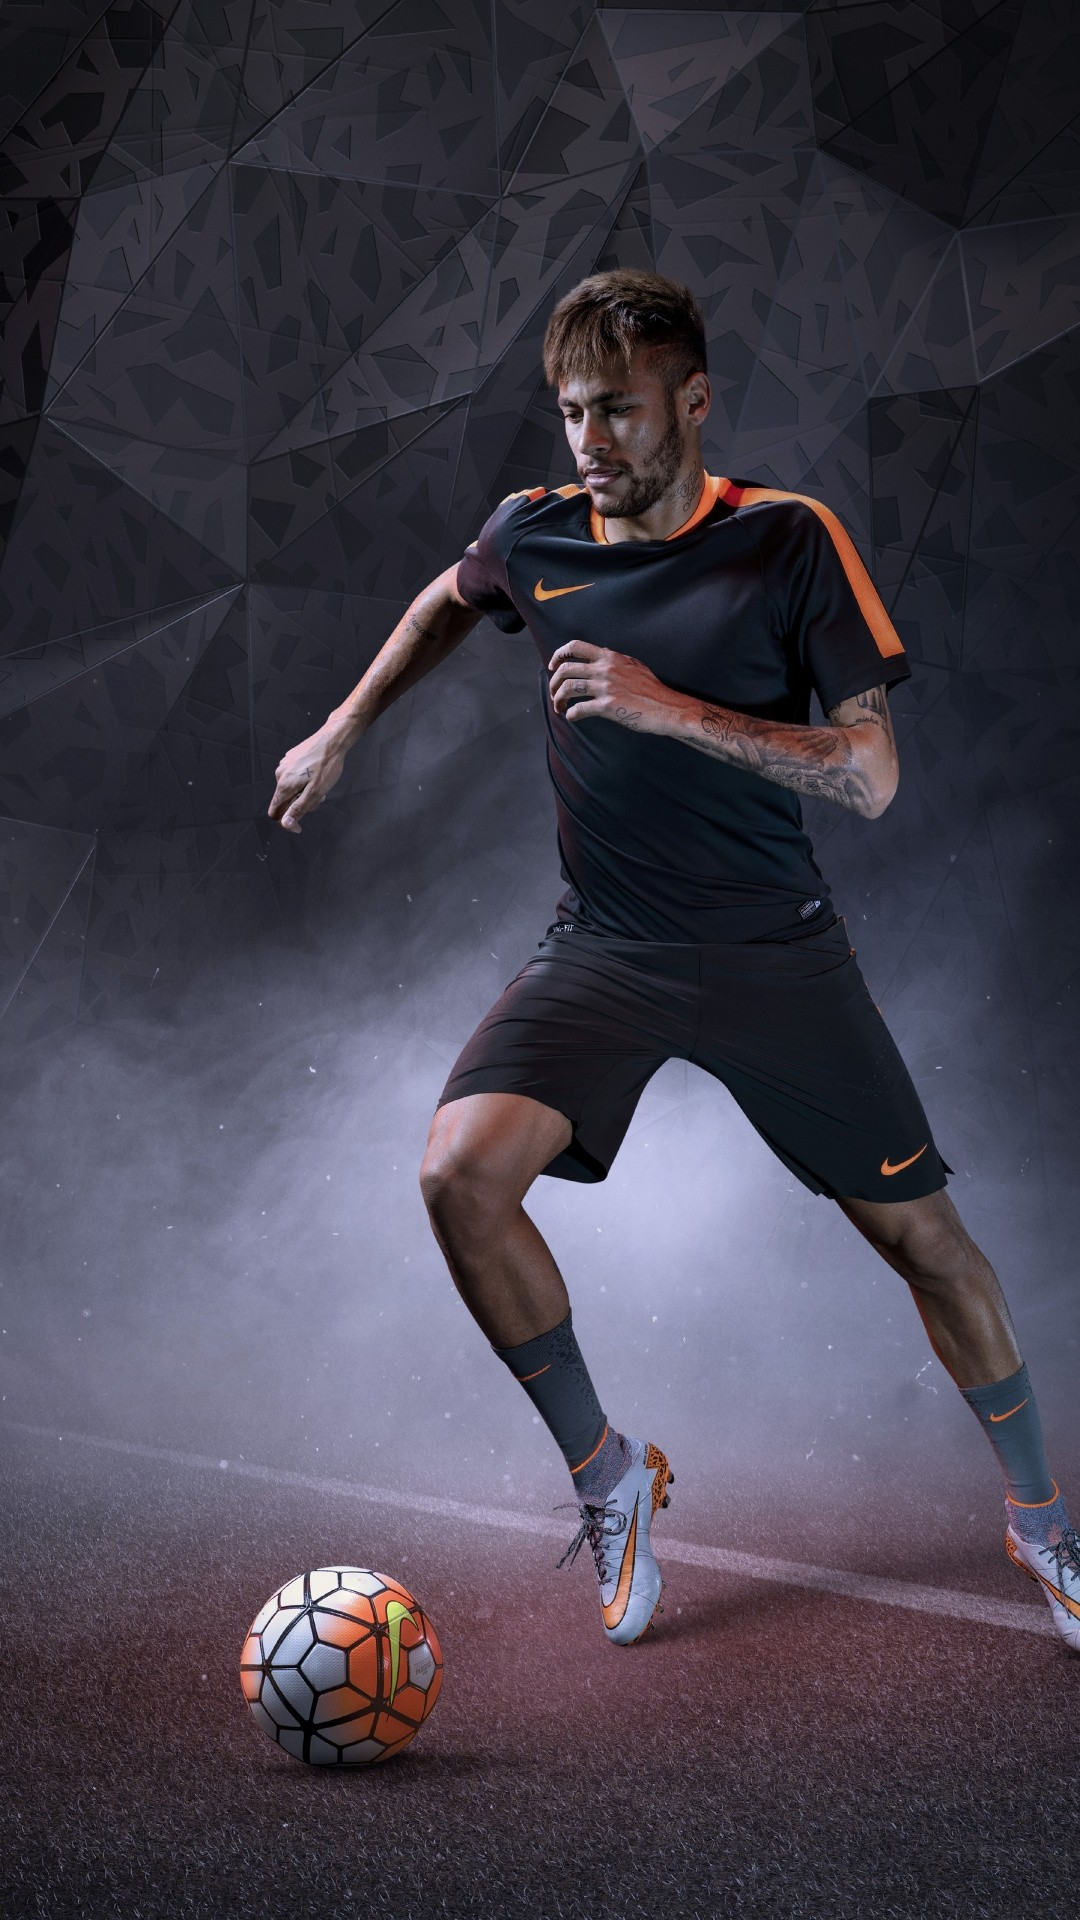 Cool Soccer wallpaper for android